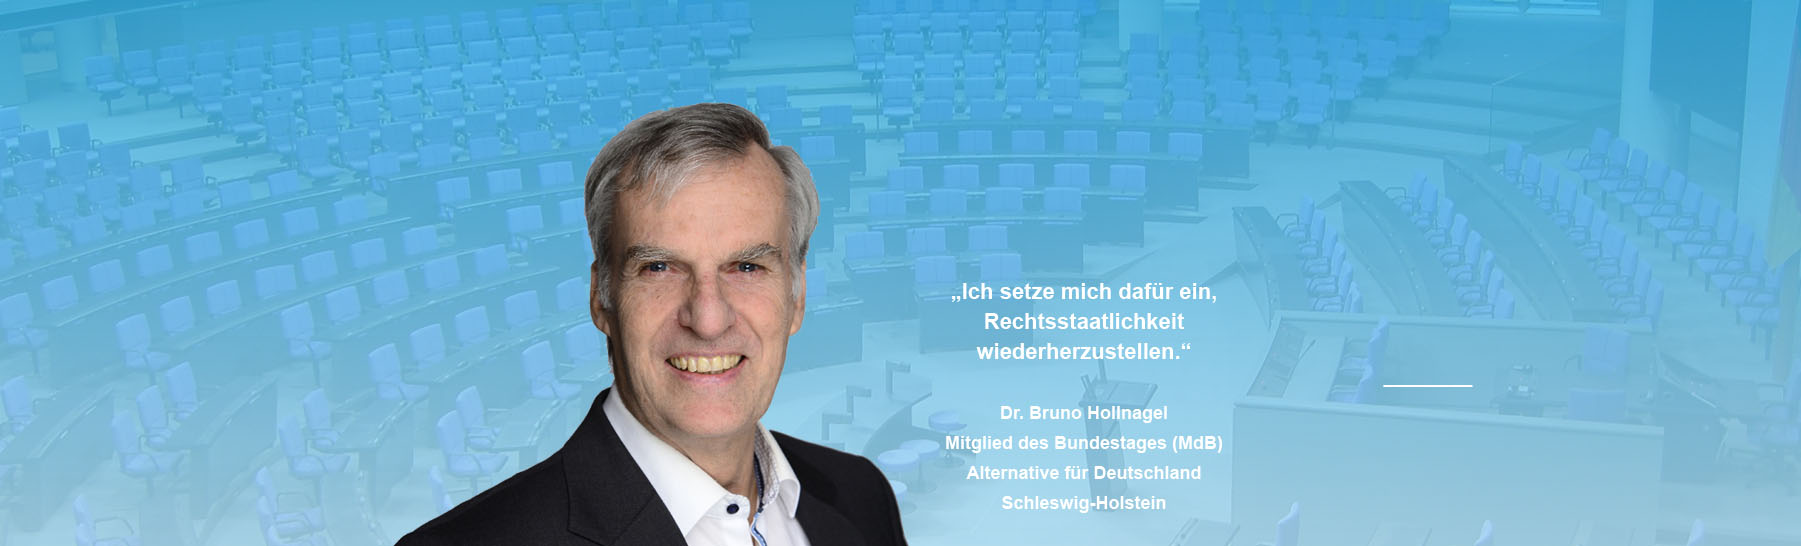 Dr. Bruno Hollnagel